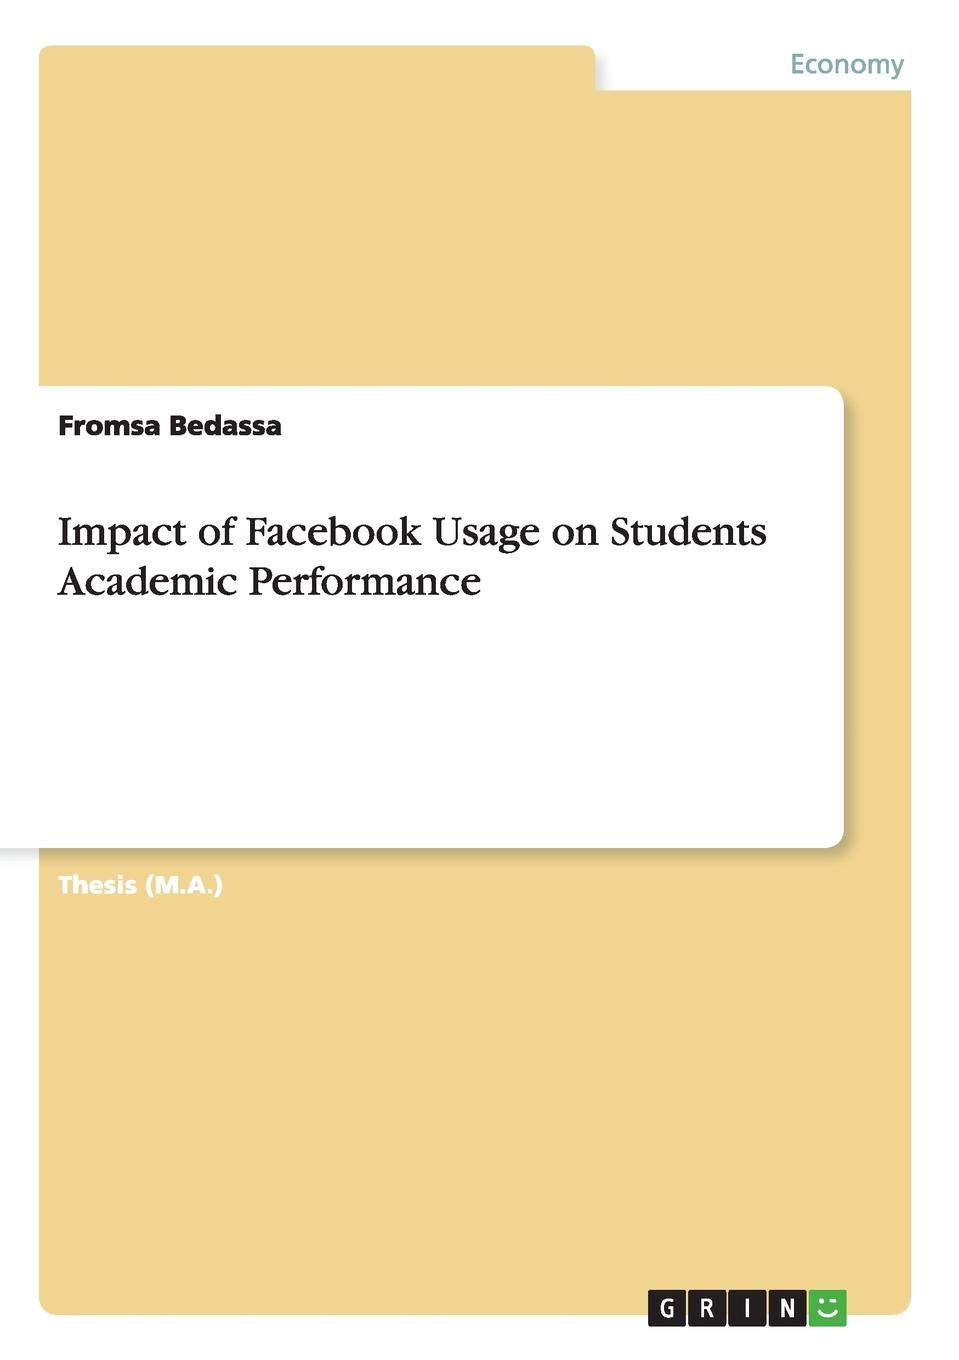 Fromsa Bedassa Impact of Facebook Usage on Students Academic Performance francesco primerano the art of life in facebook